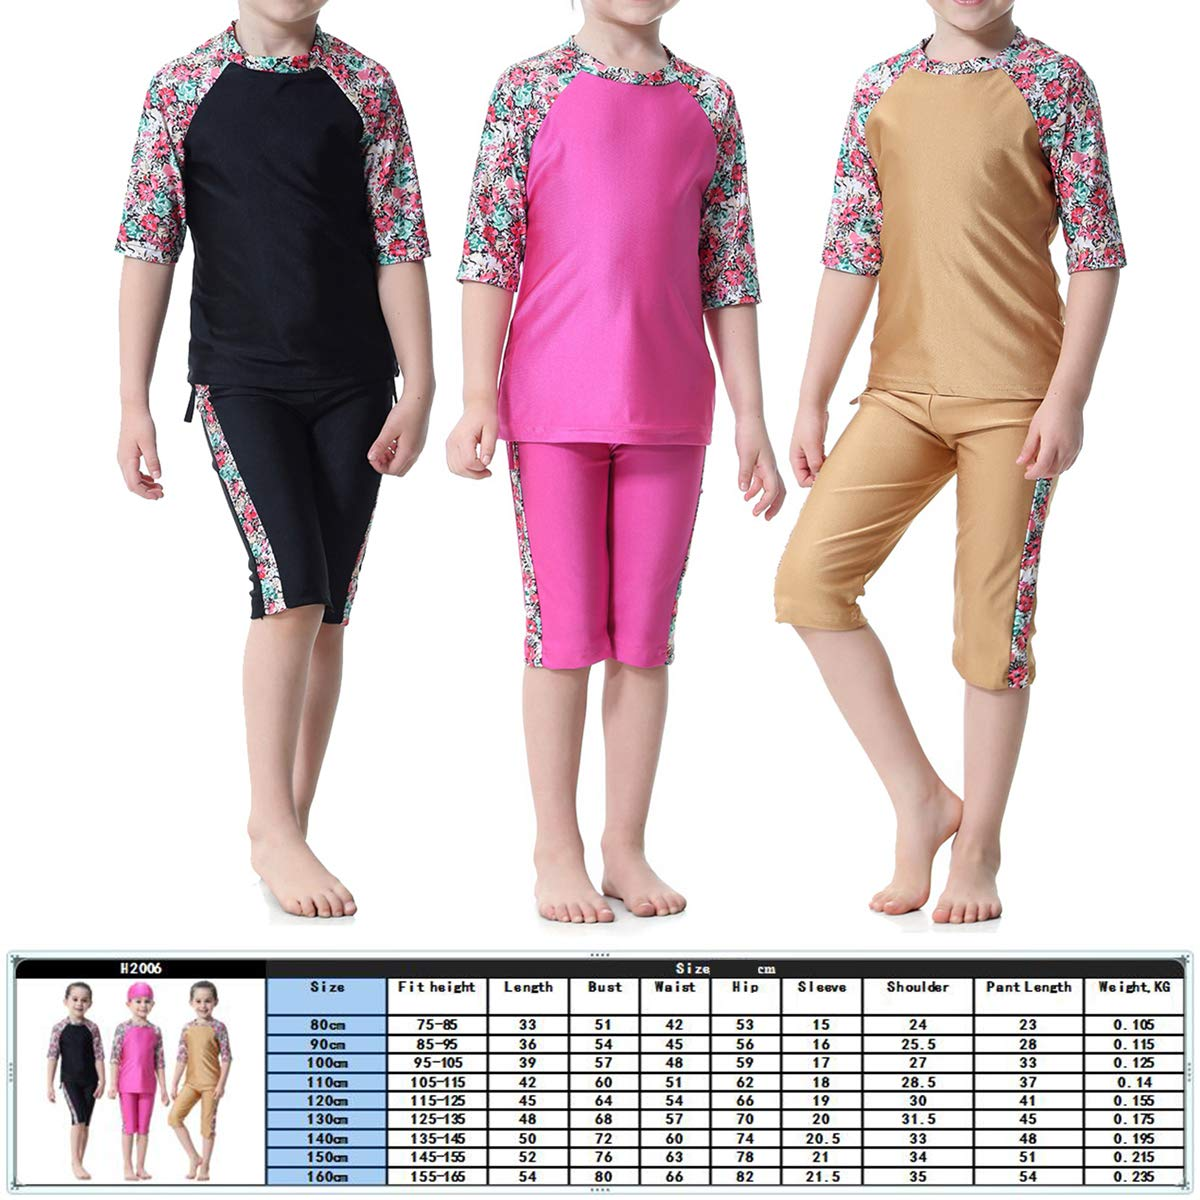 Rosy 1 Pc Muslim Arab Girls Swimsuit Short-Sleeved Top and Short Suit Conservative Split Swimwear H2006 for Girls and Teens-90cm